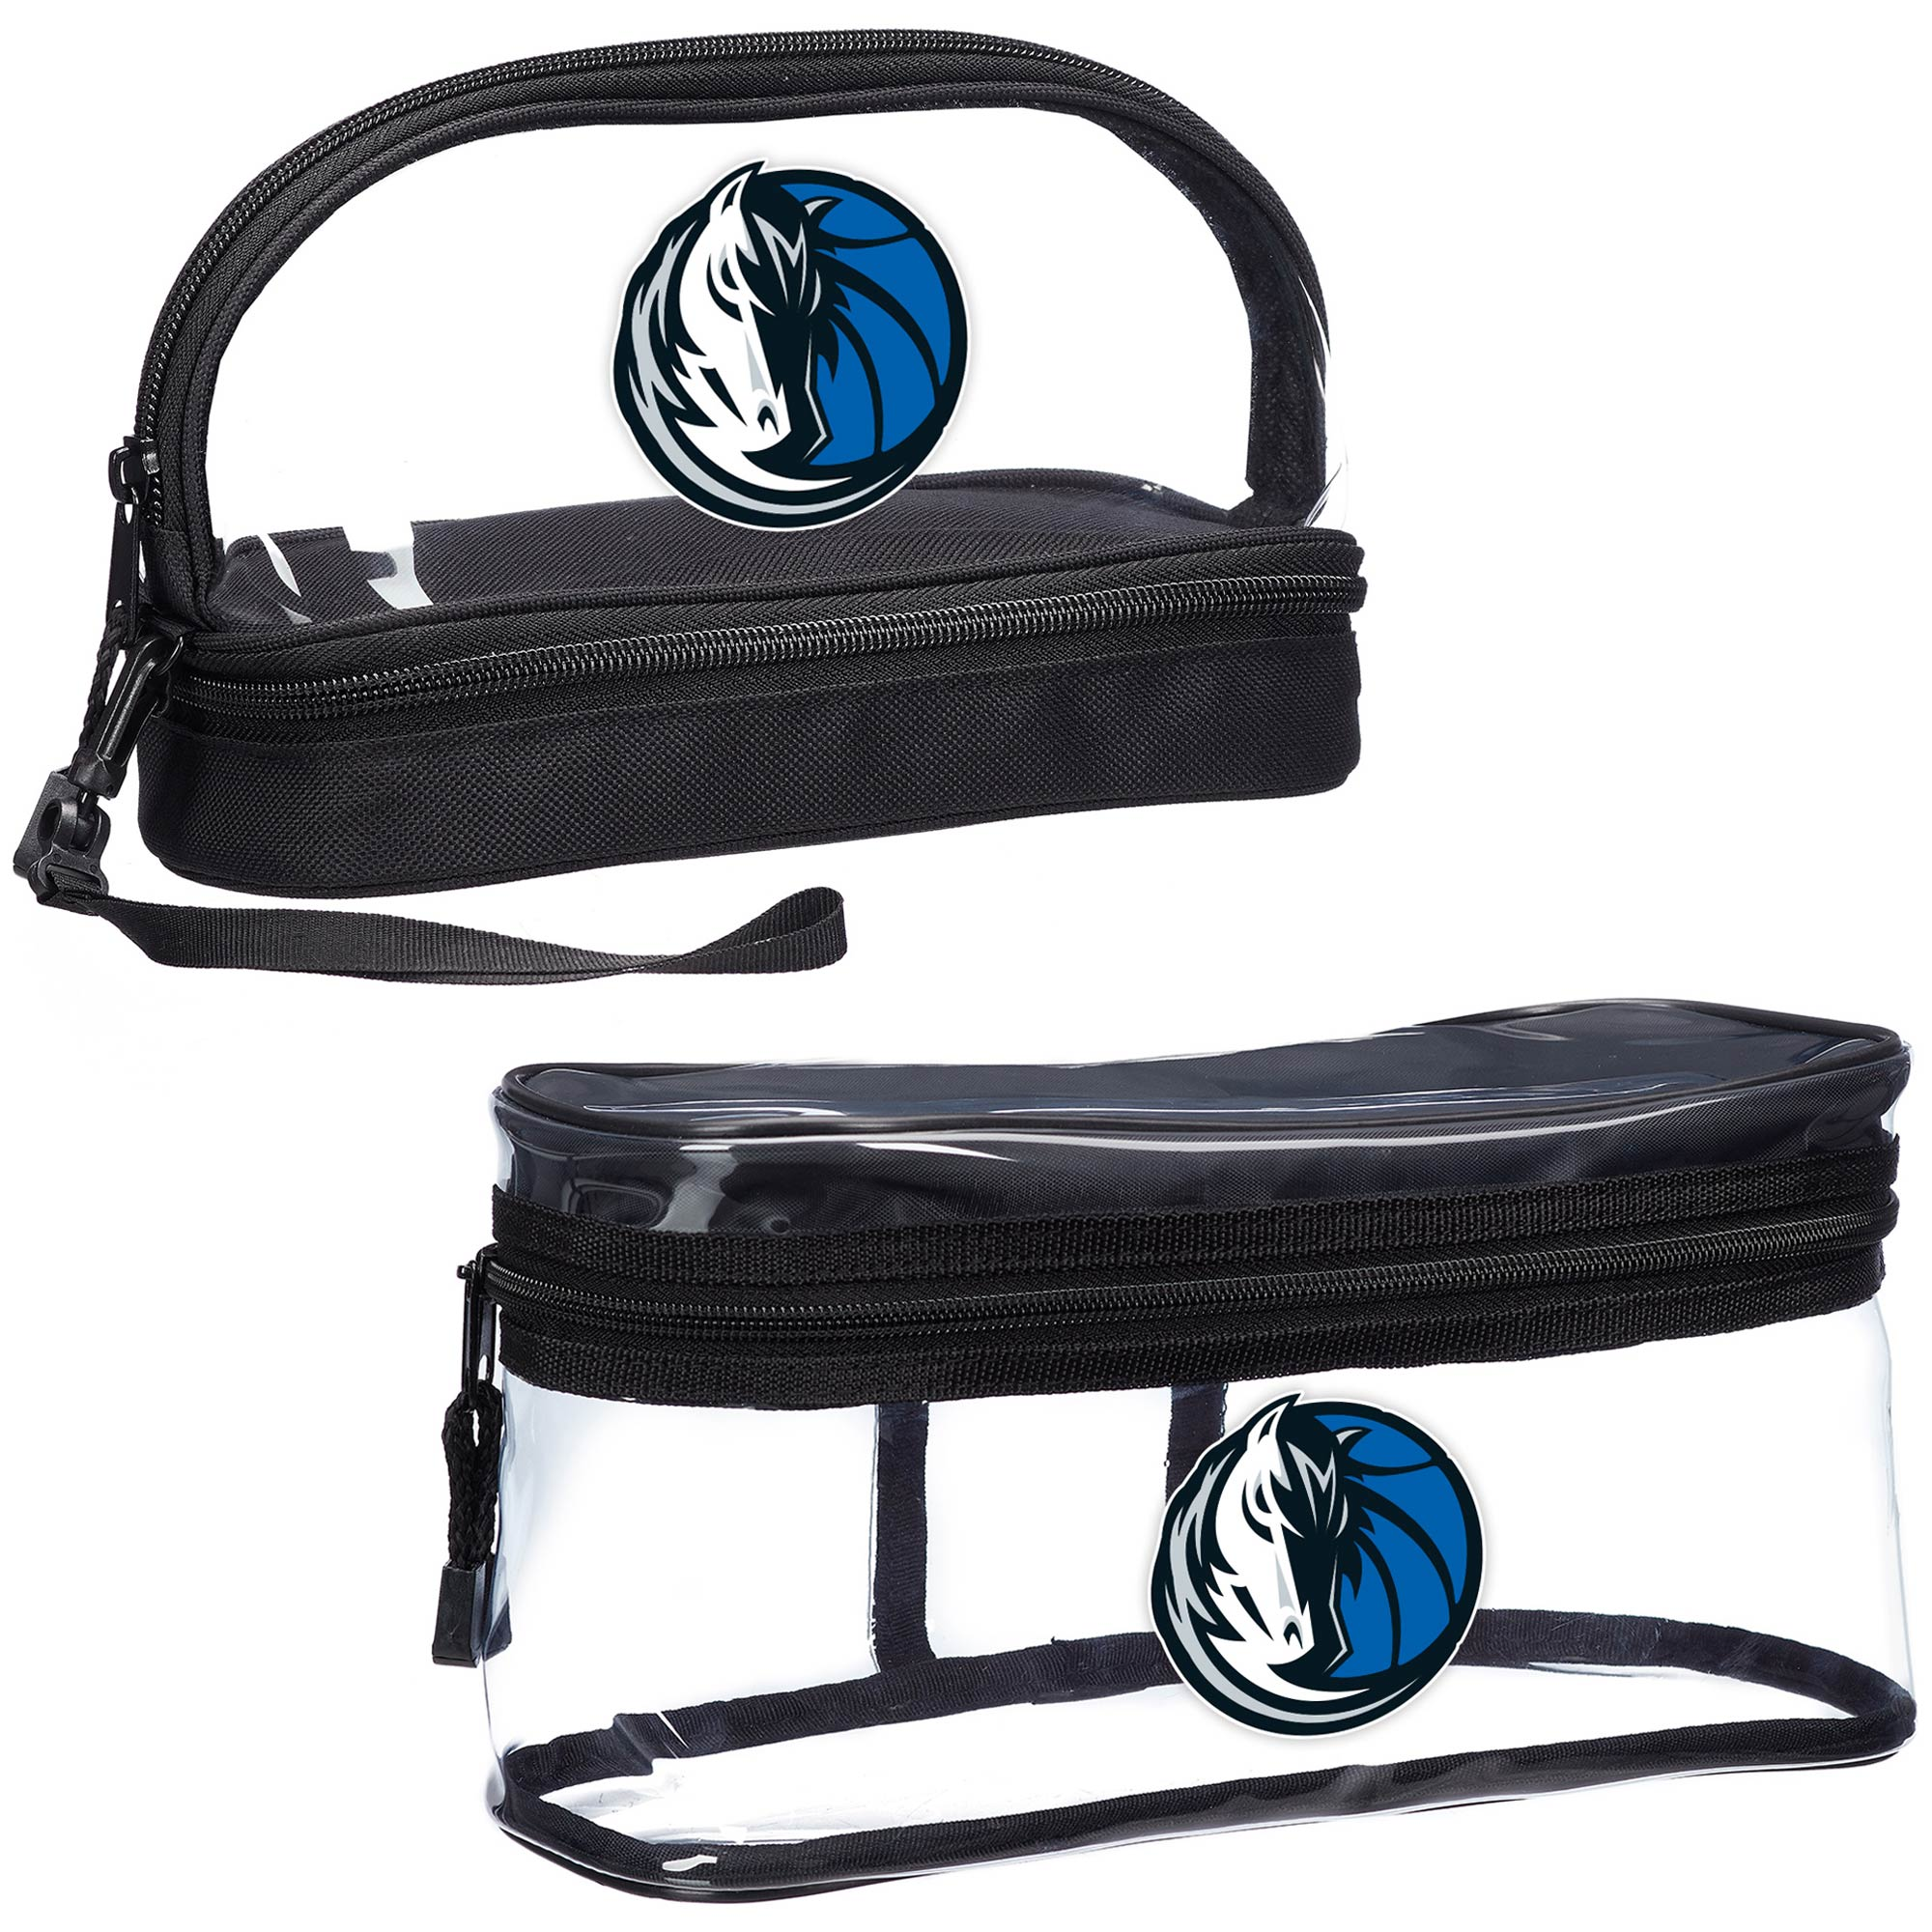 Dallas Mavericks The Northwest Company Two-Piece Travel Set